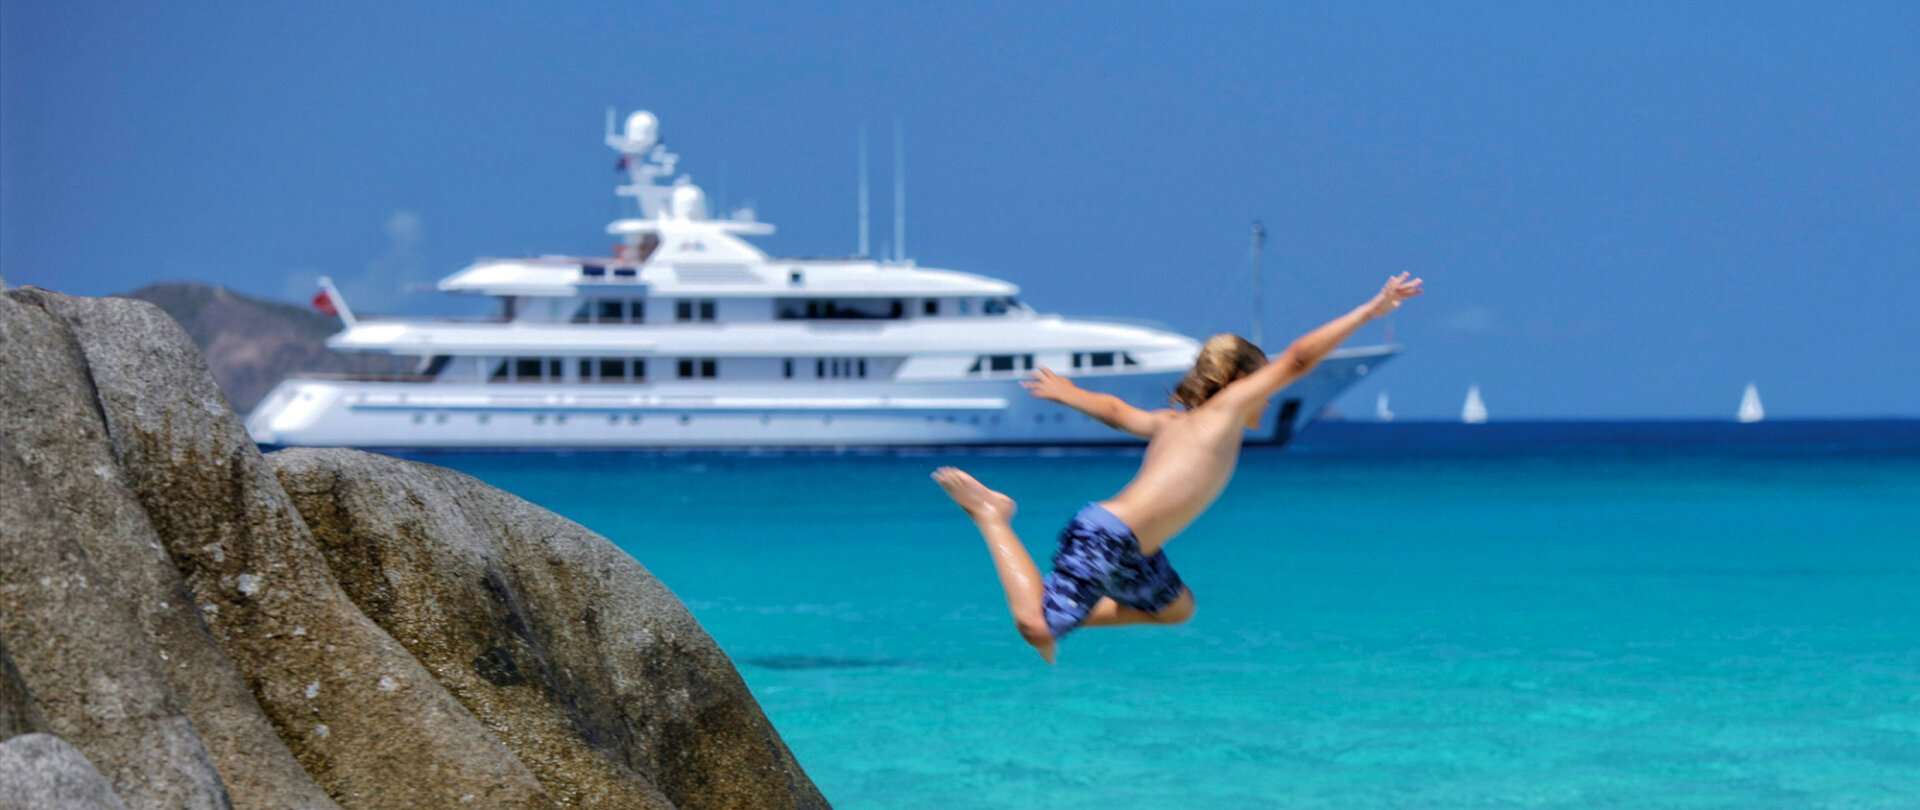 Diving from rocks near your yacht in the Maldives